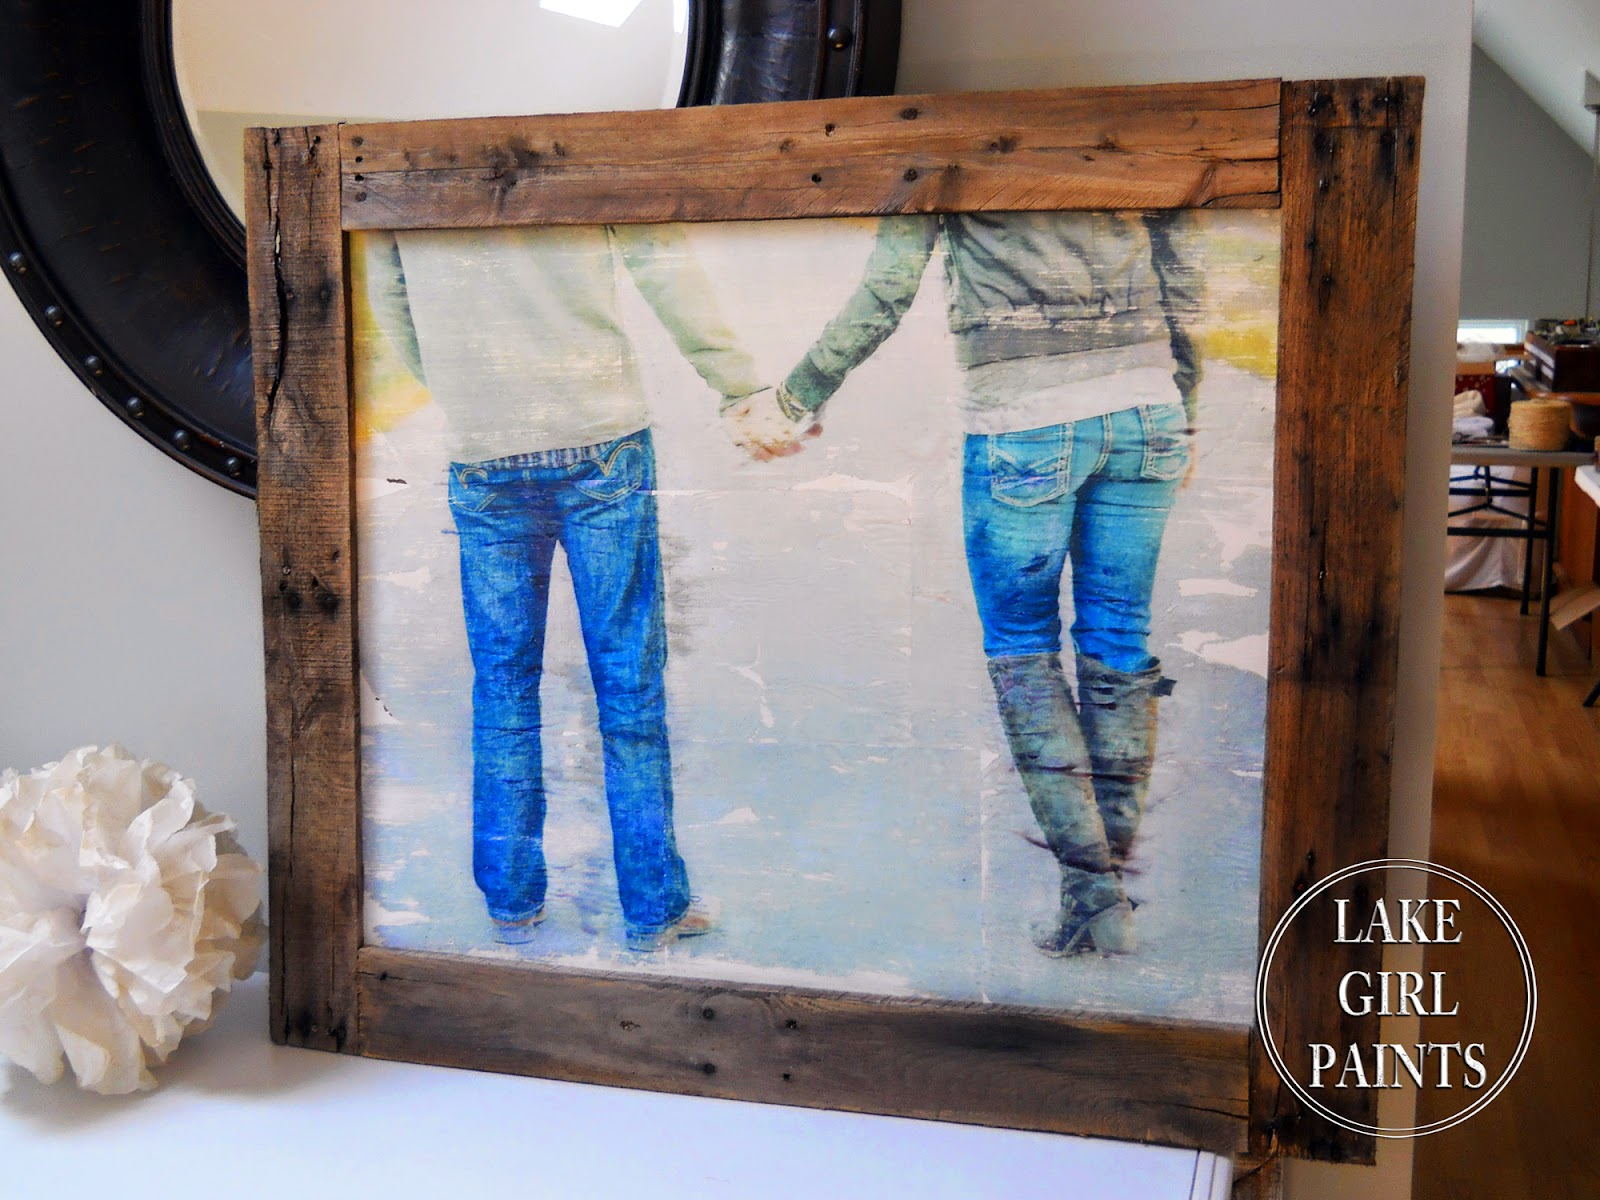 lake girl paints large photo transfer art for 15 with